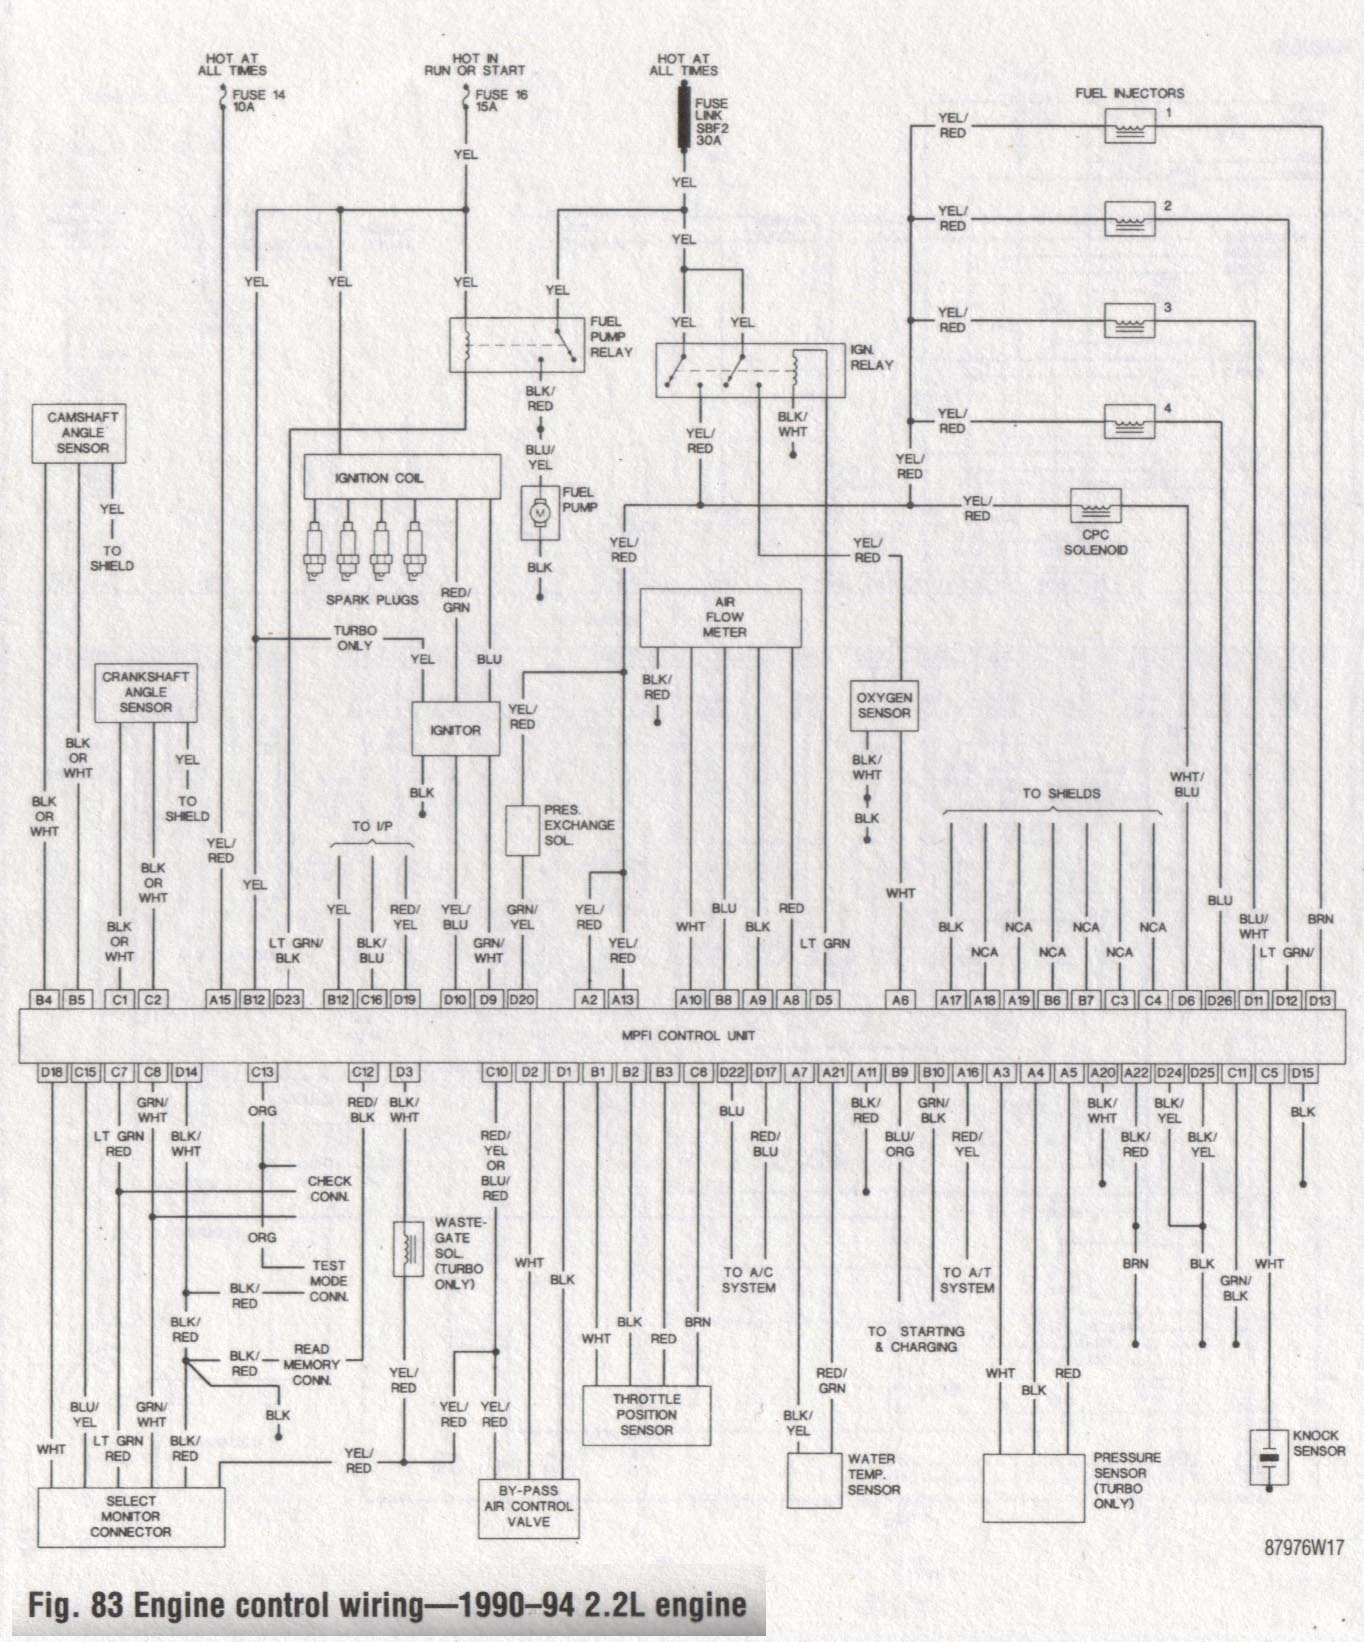 Schematic90 94Legacy vanagon restoration for the compleat idiot 2005 subaru legacy wiring diagram at reclaimingppi.co